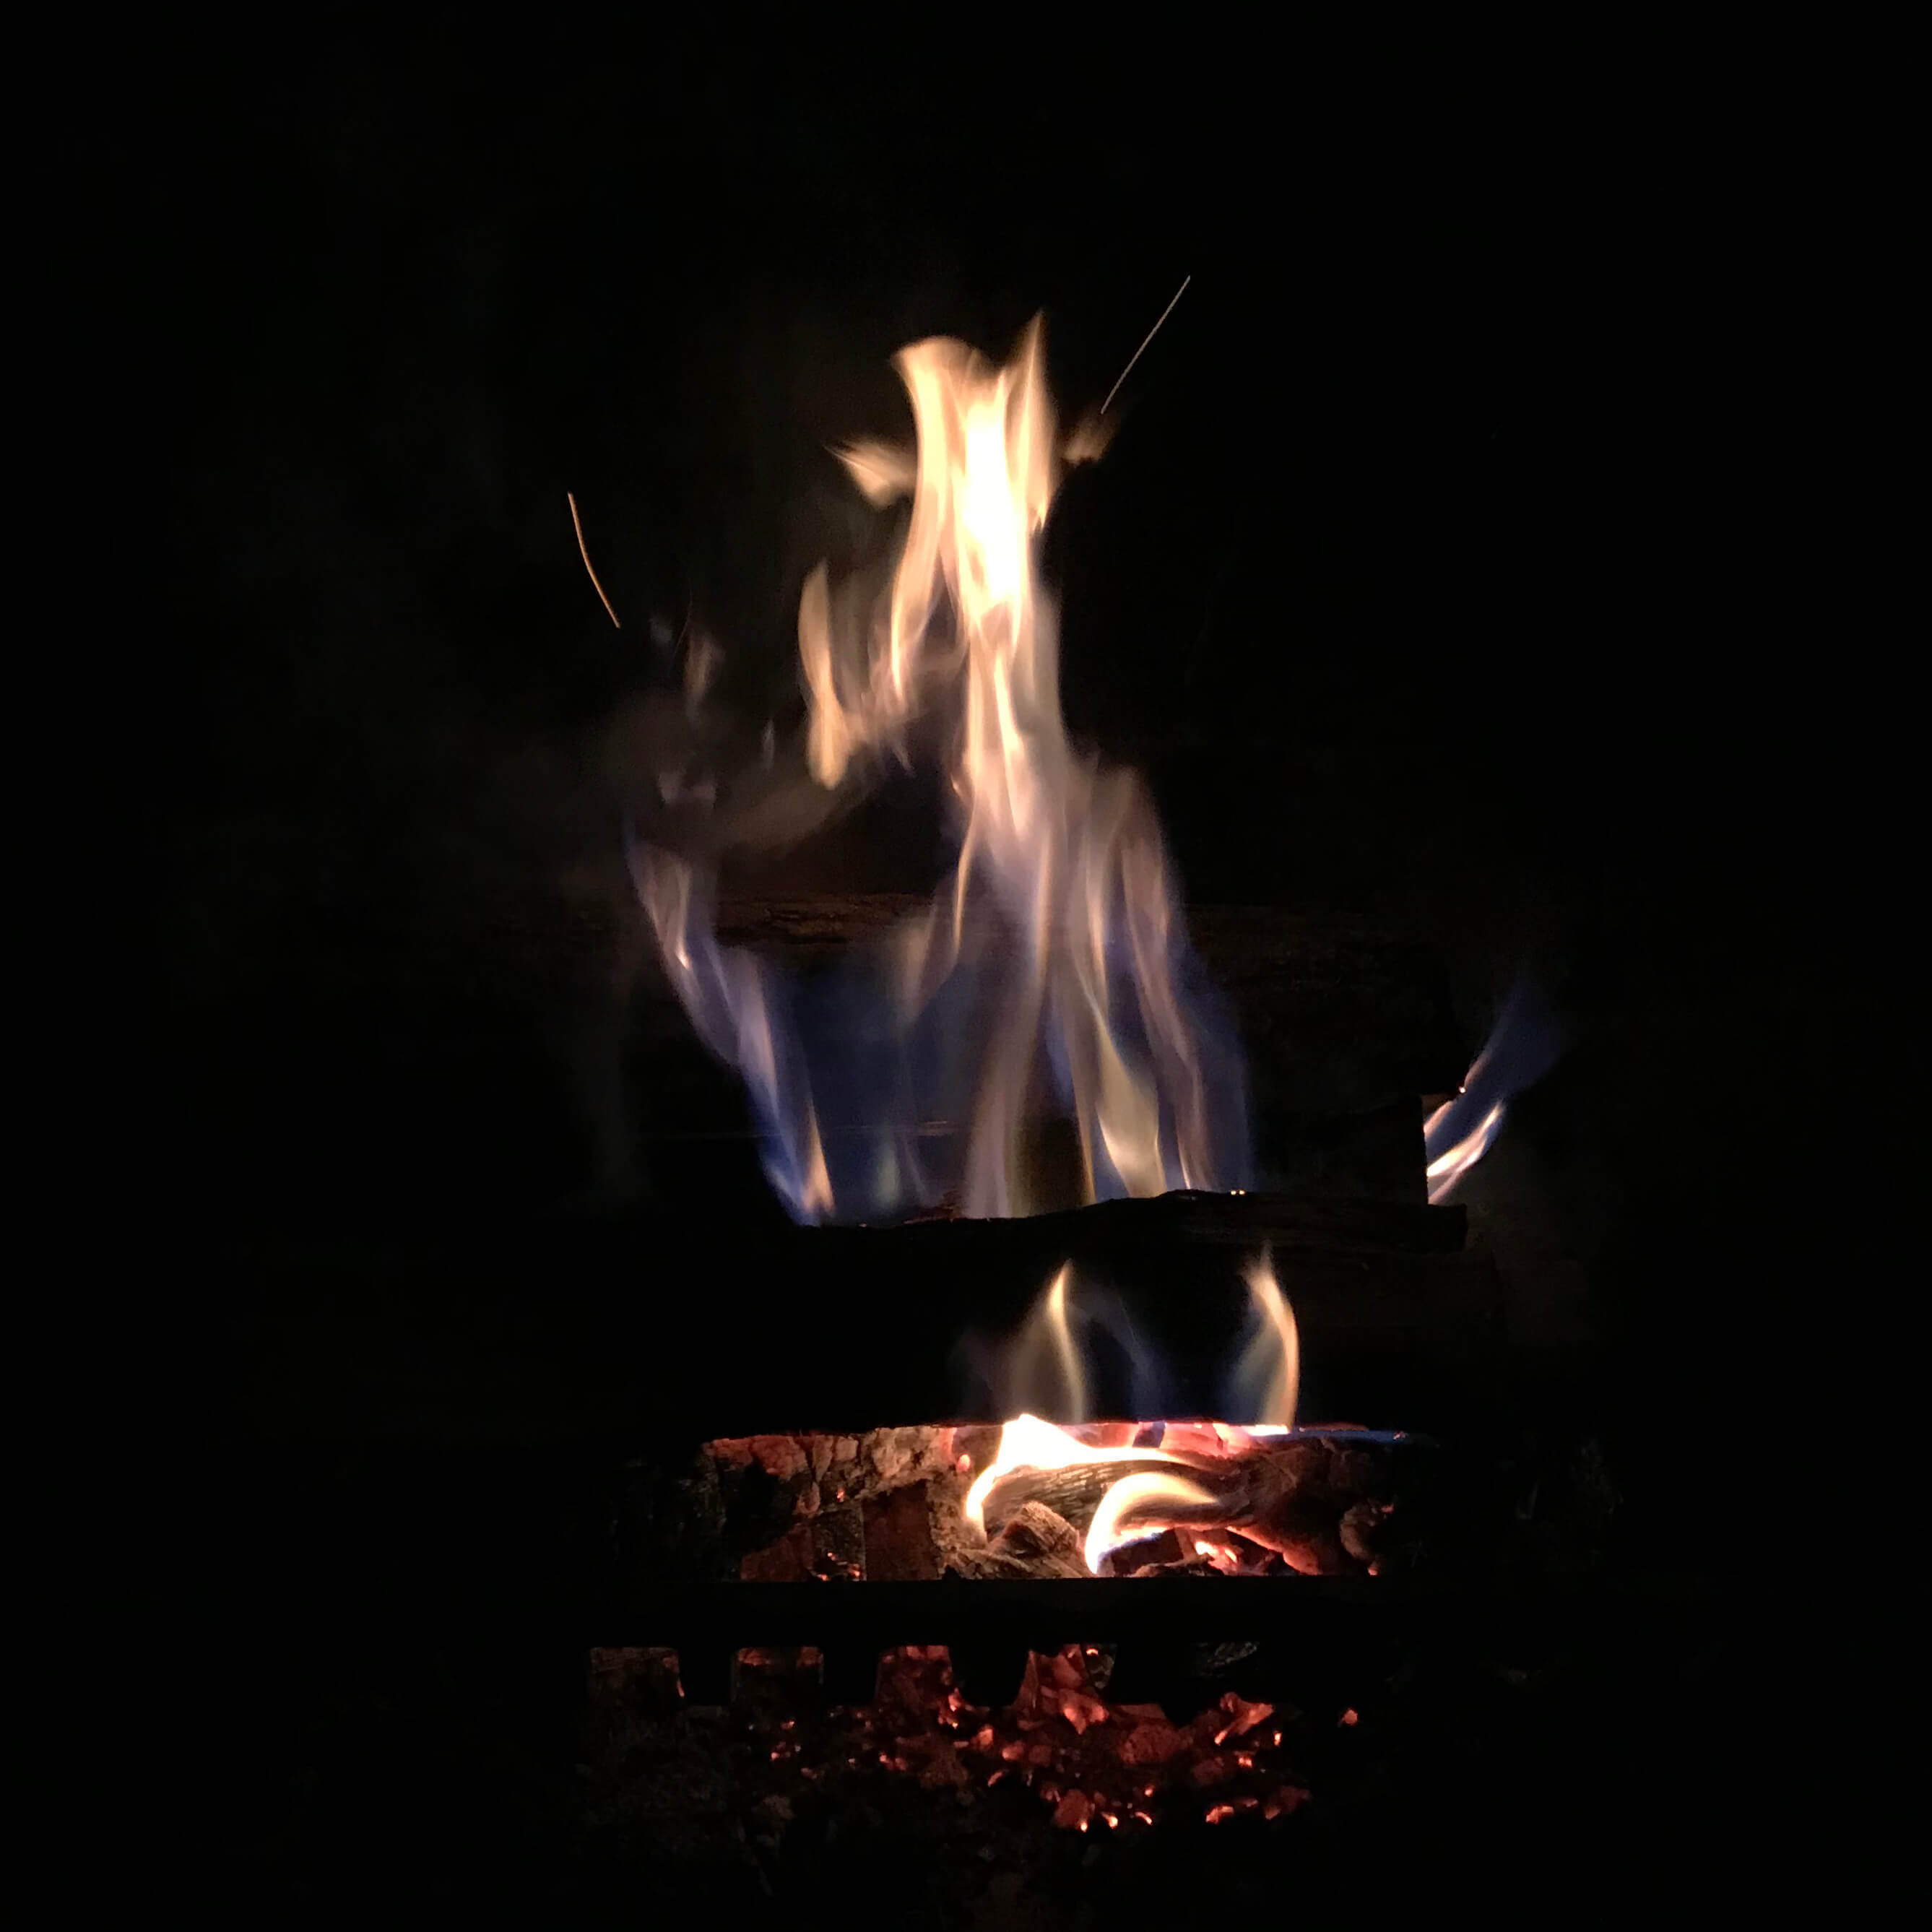 Episode 2: Campfire Stories